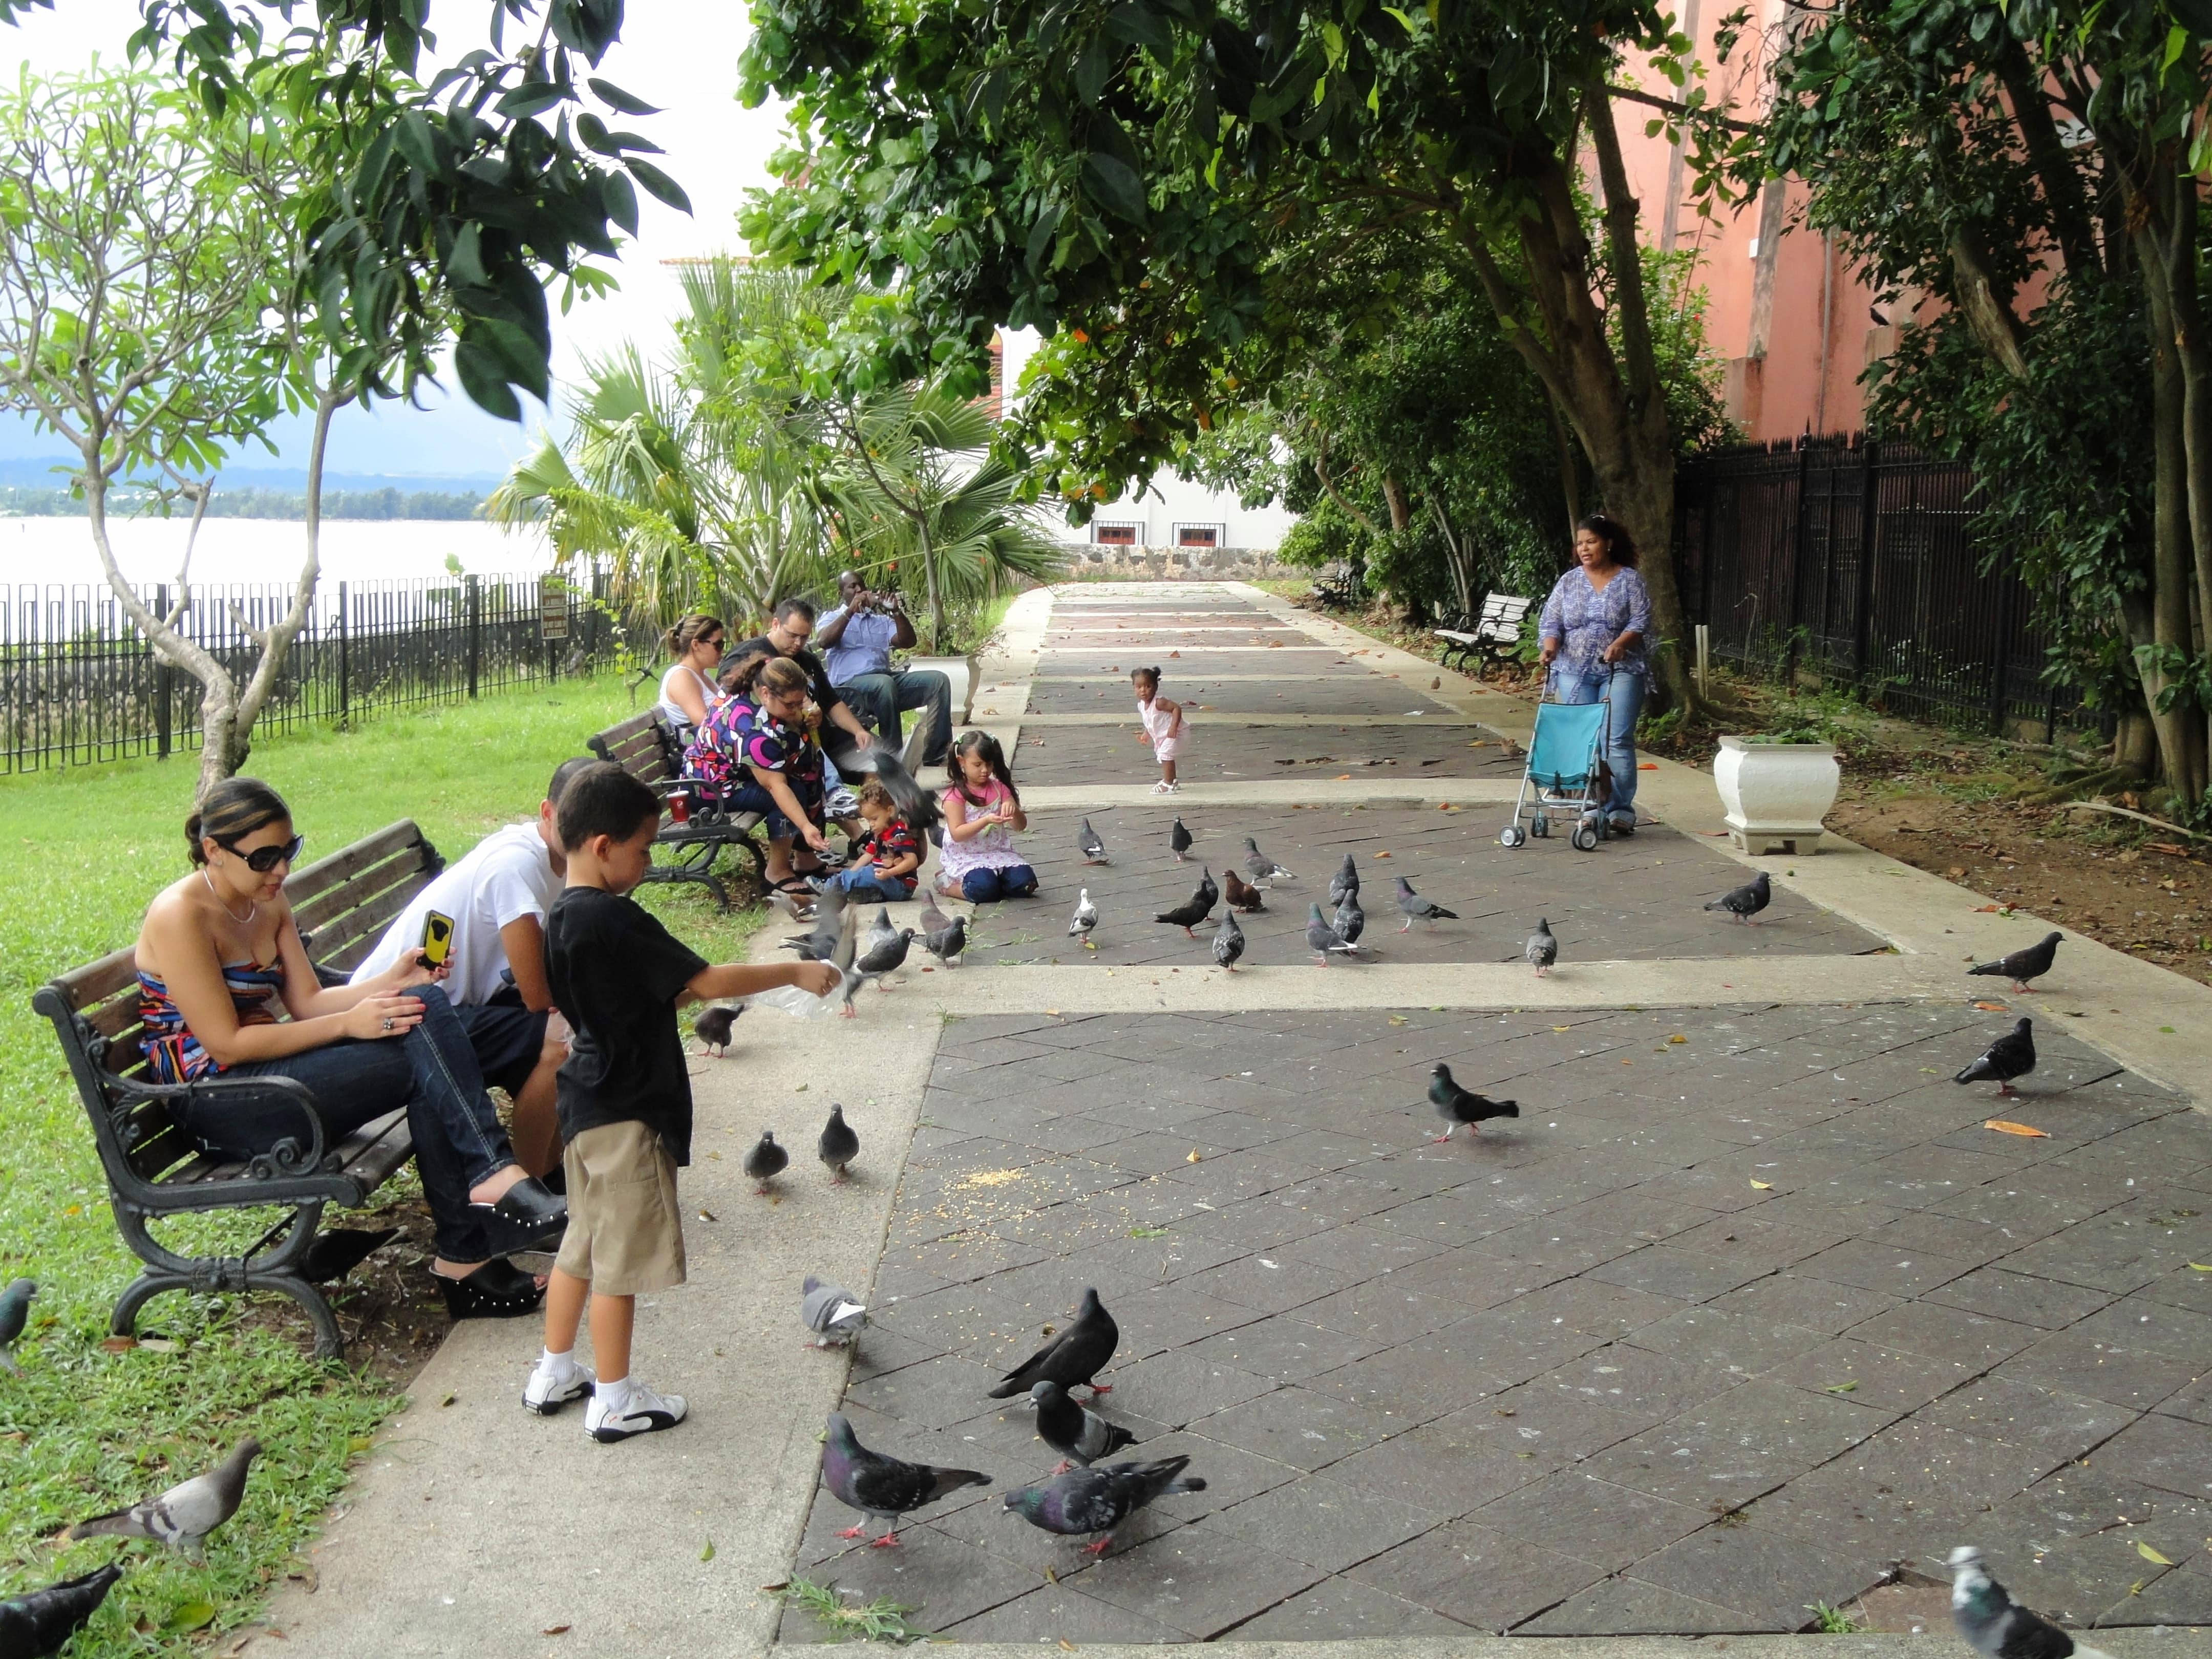 Parque Las Palomas aka Pigeon Park is one of the fun things to do in san juan puerto rico